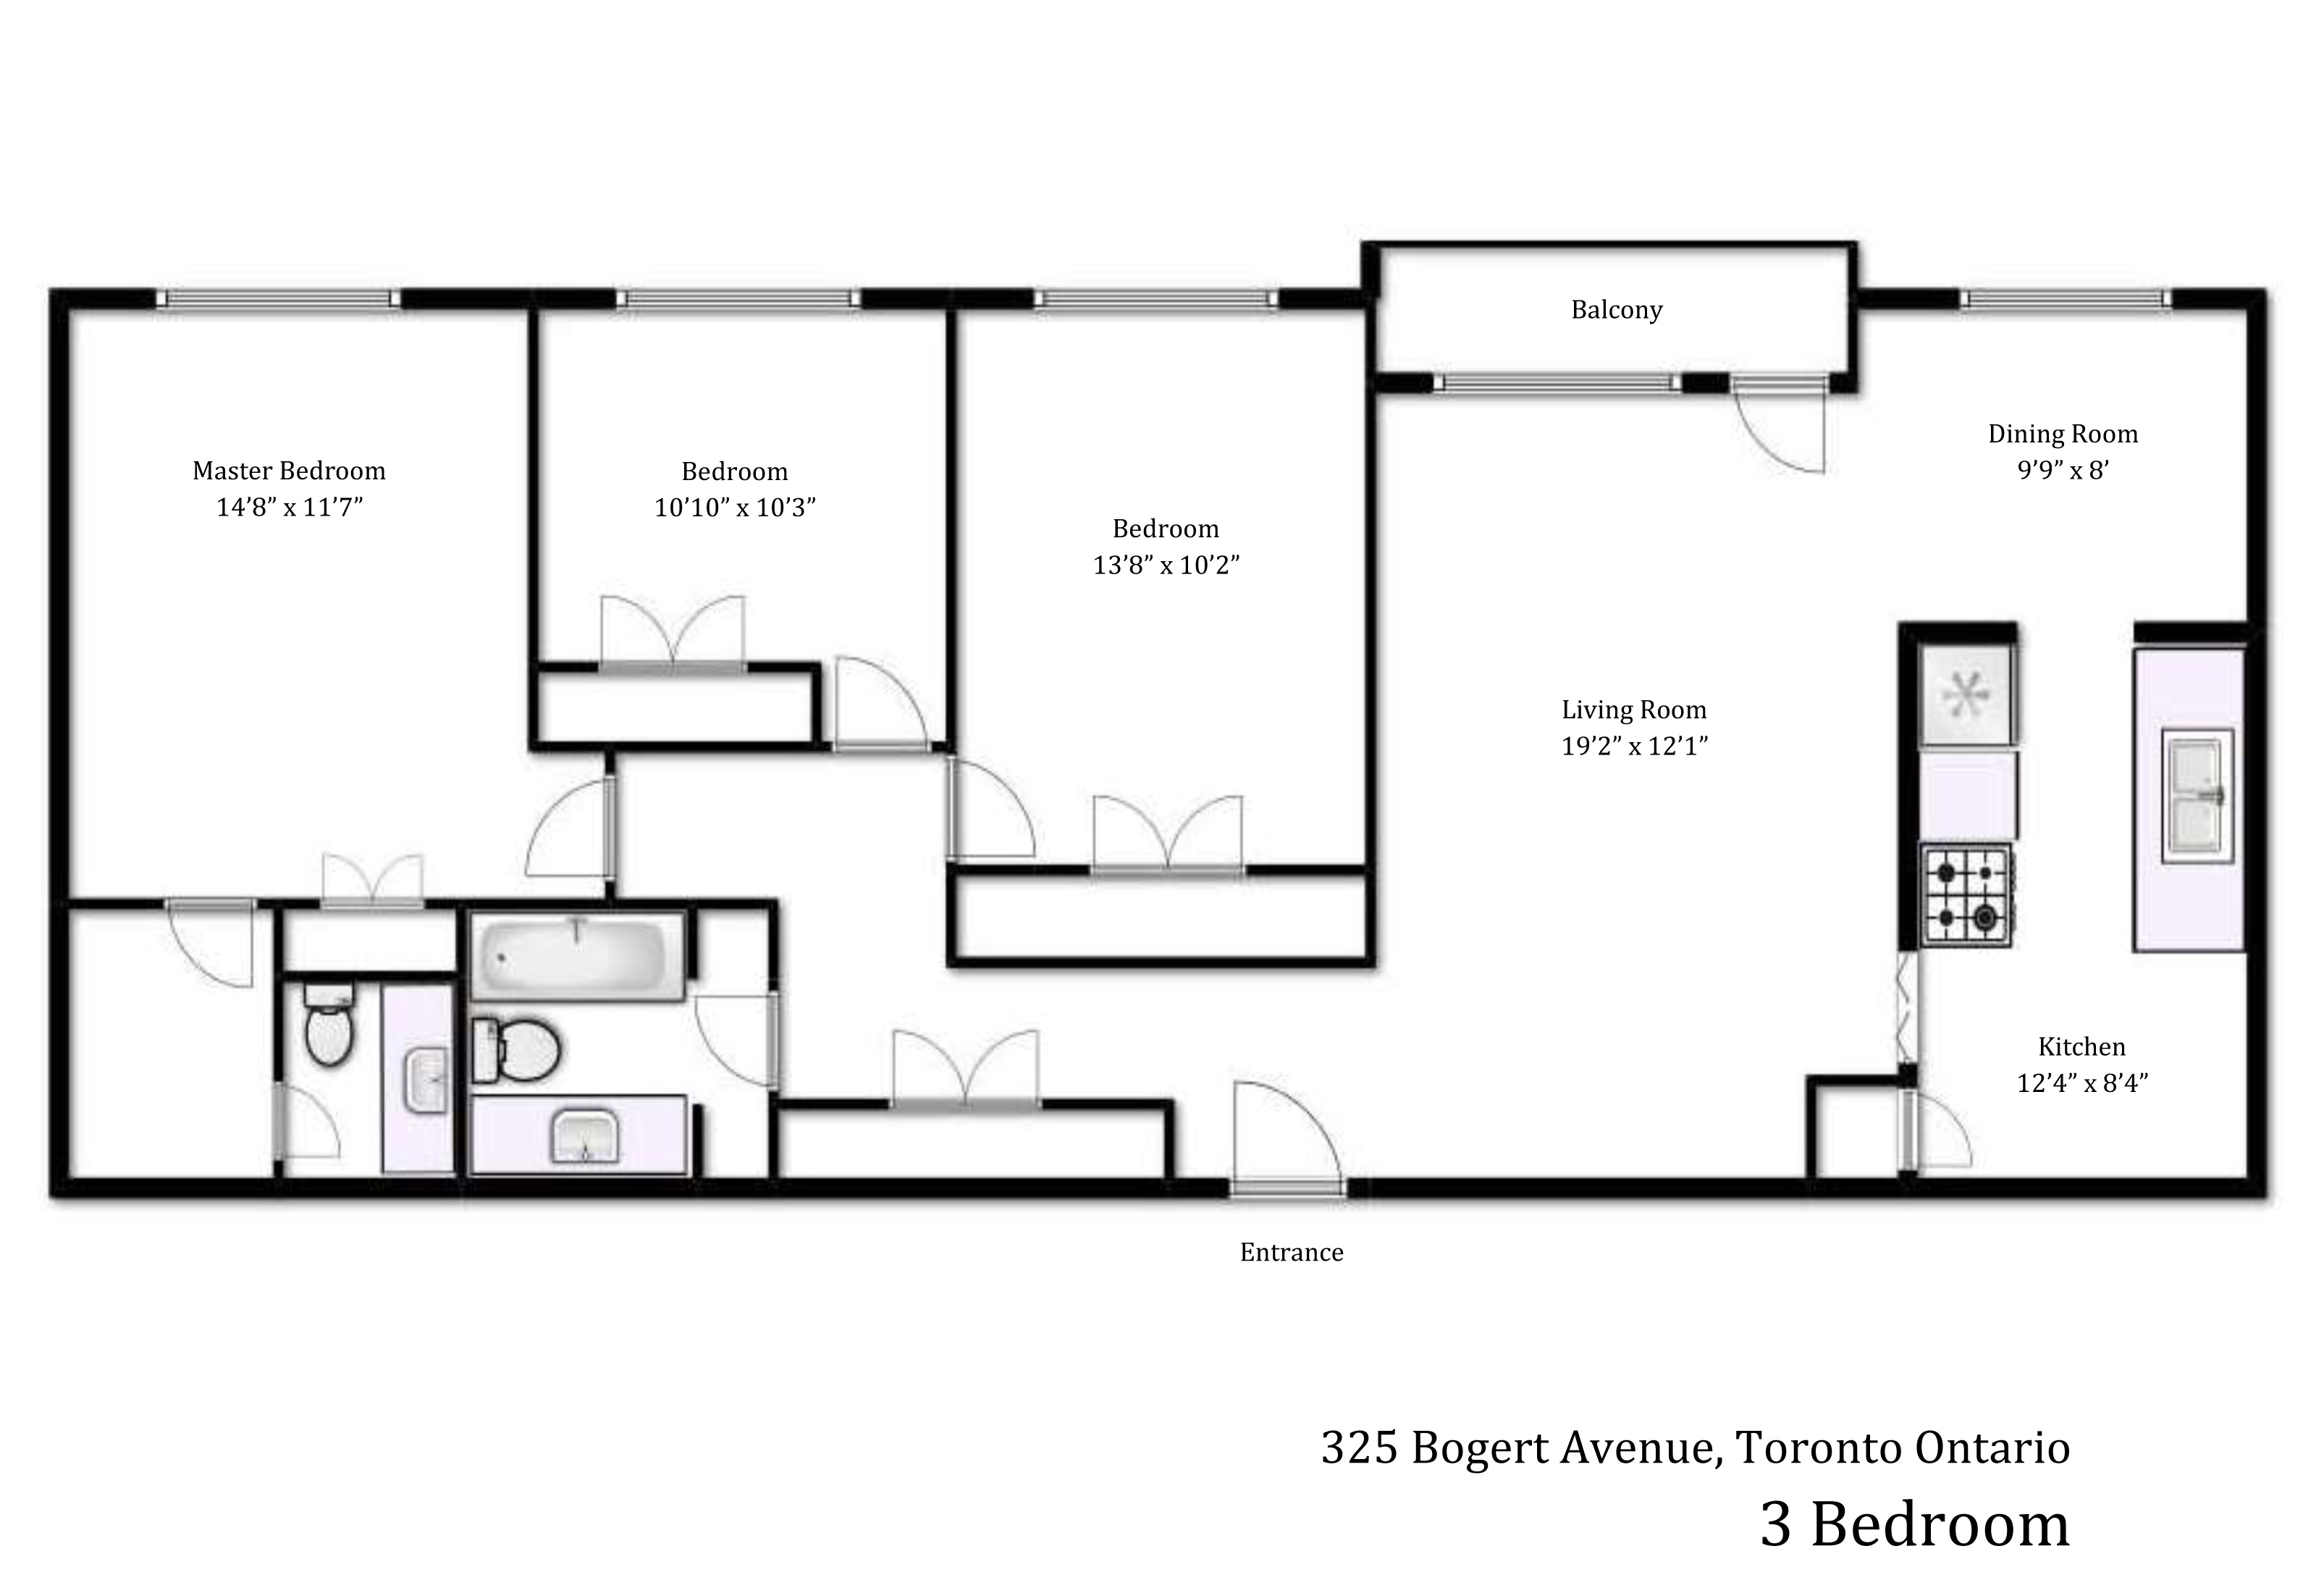 Gallery heath residence 325 bogert ave for 3 bedroom floor plans